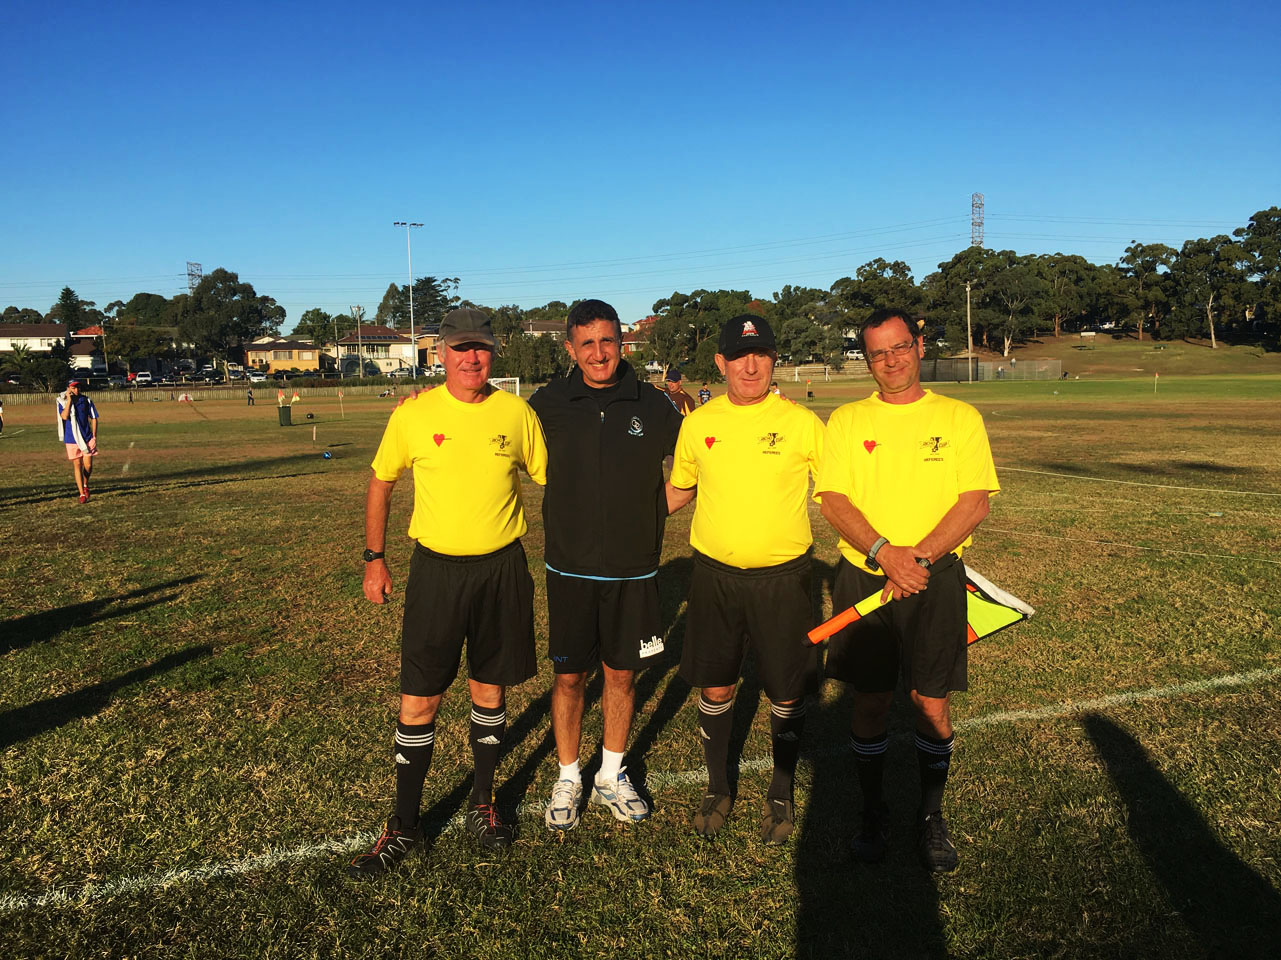 Chris Christodoulou CPRFC Coordinator together with Richo Cup 2016 officials